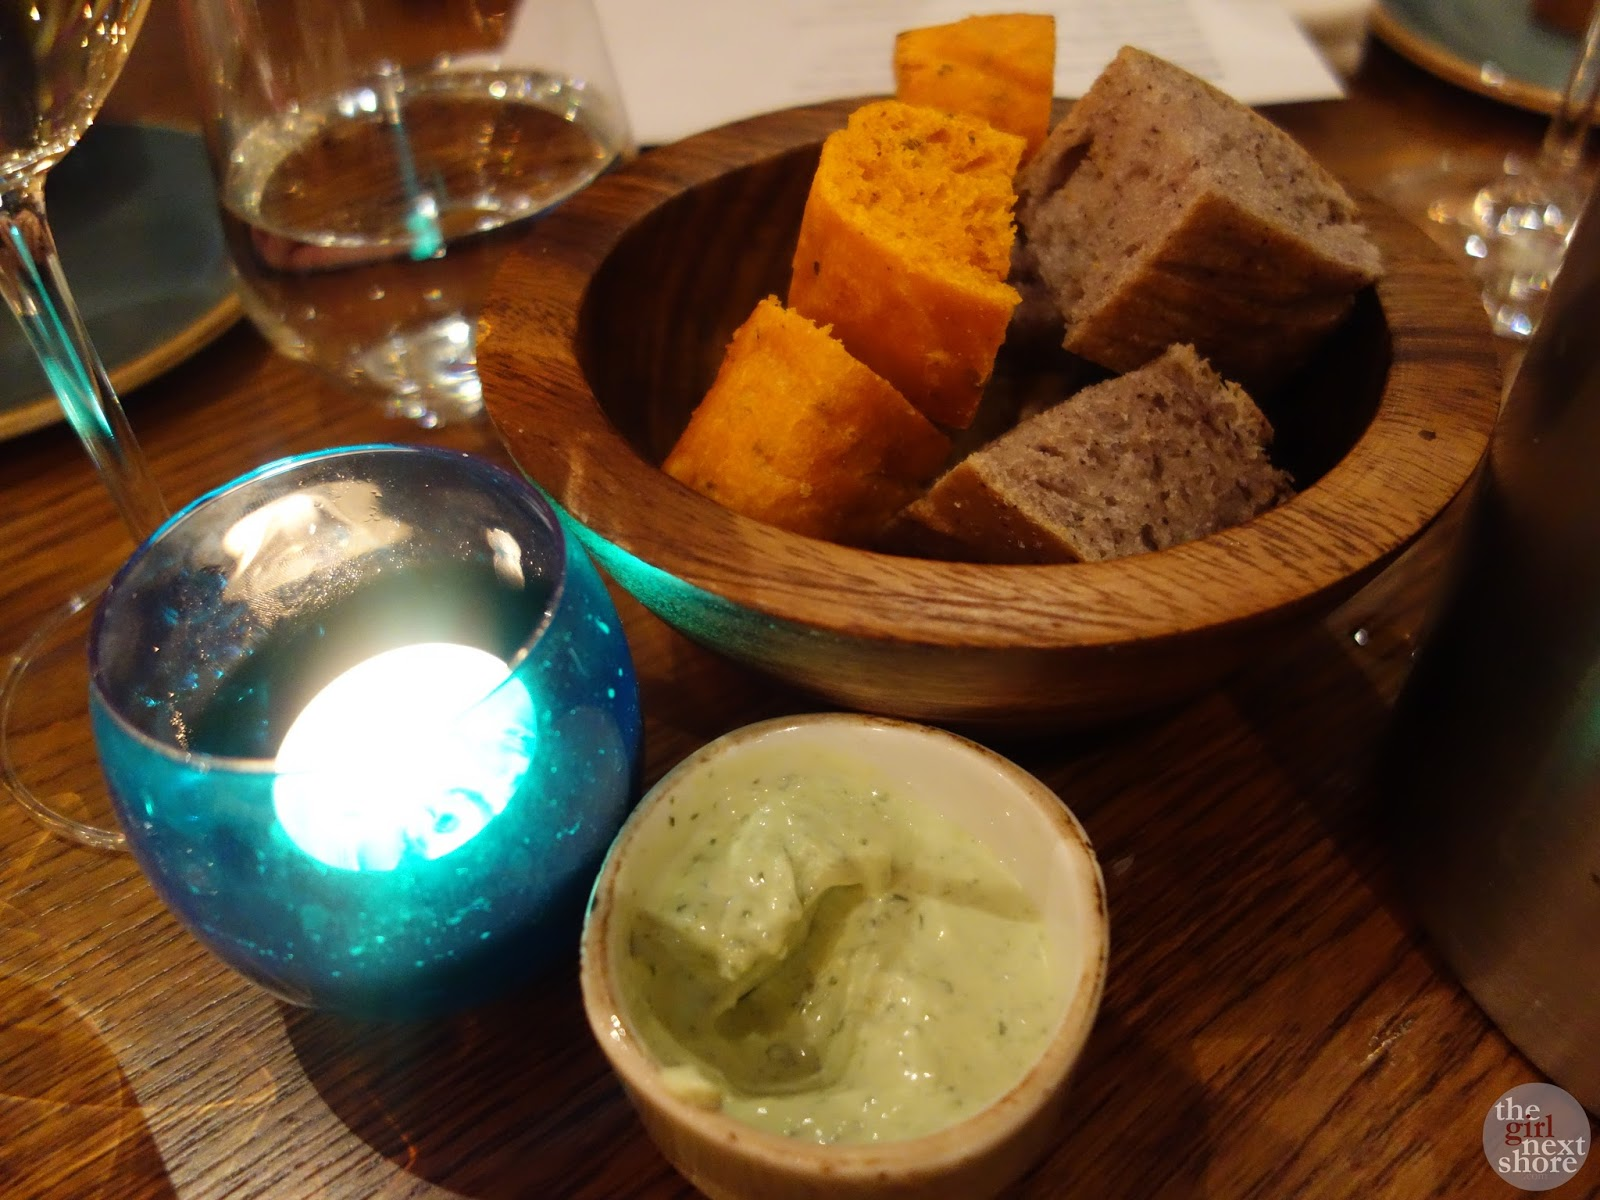 Lima Floral: where I had one of my favourite meals of 2014